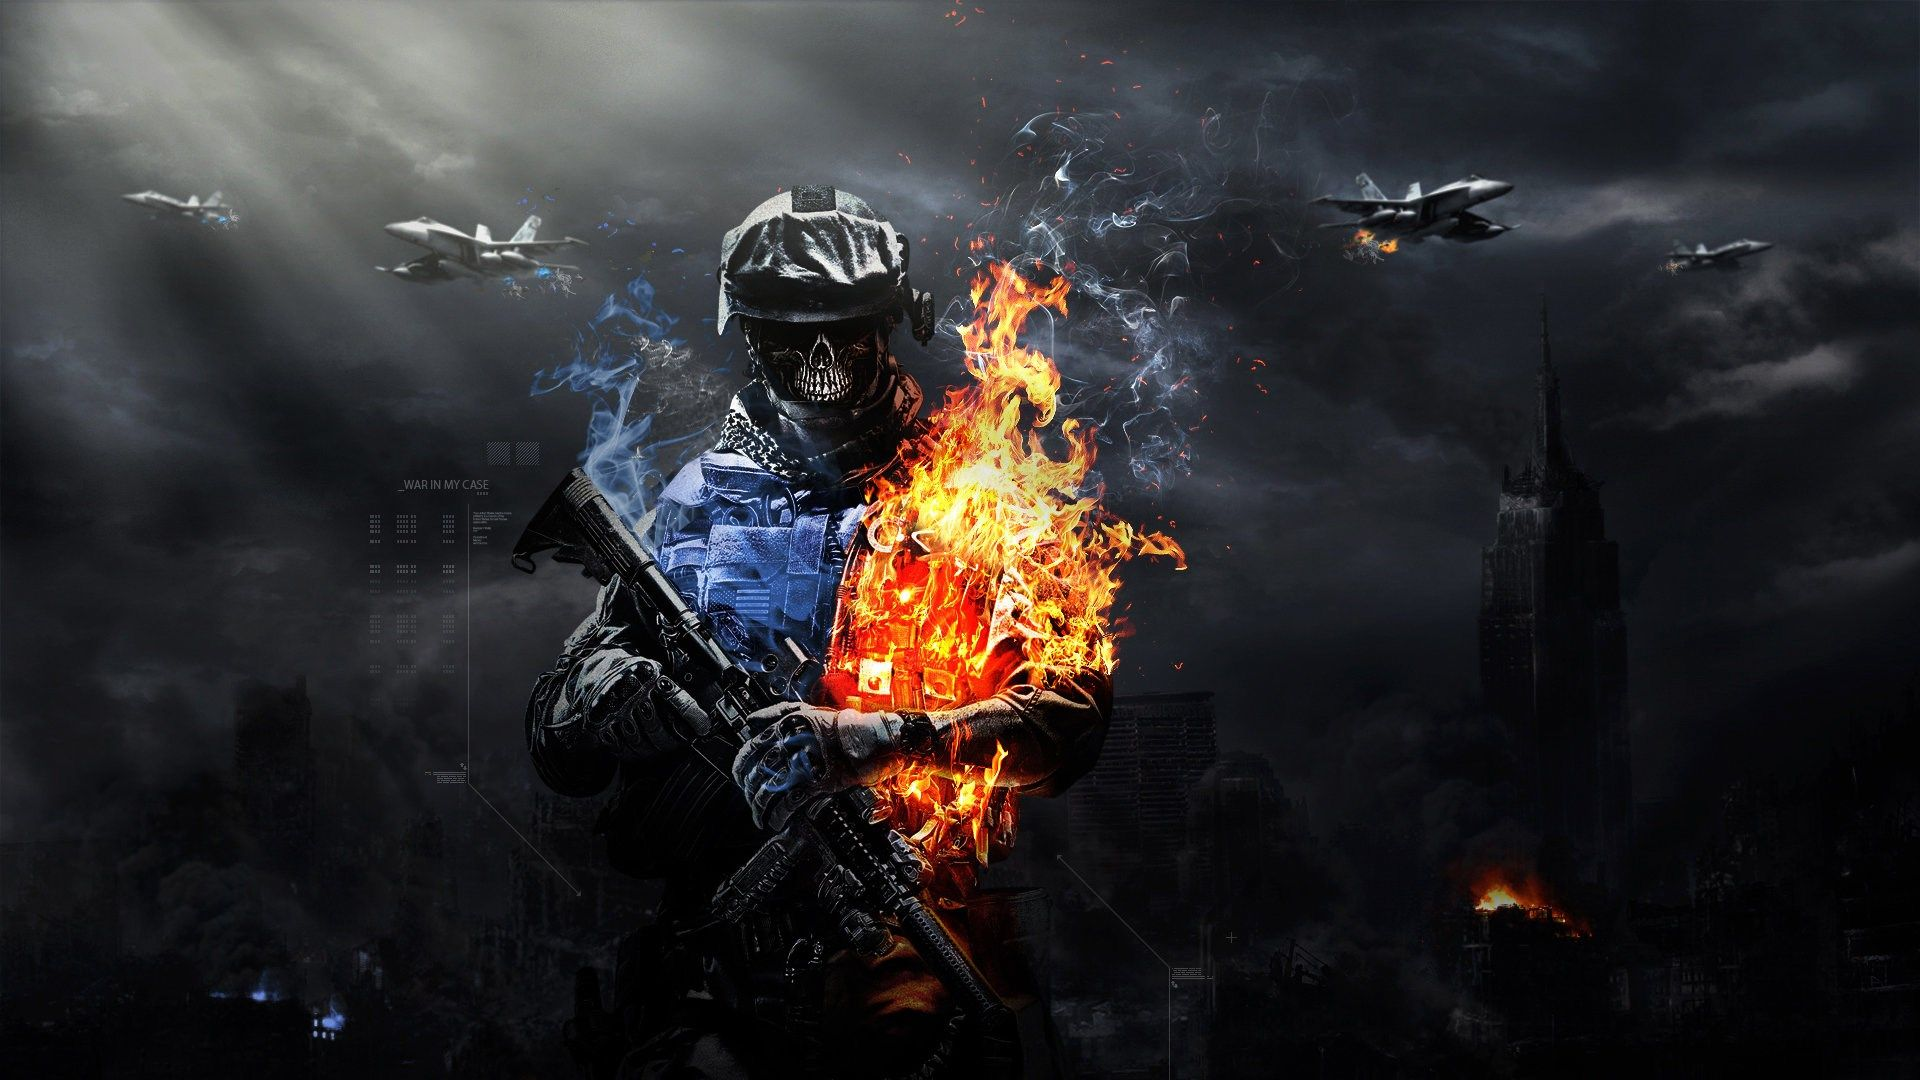 Battlefield 3 Backround For Desktop Hd Tyquan Black 1920x1080 Best Gaming Wallpapers Zombie Wallpaper Gaming Wallpapers